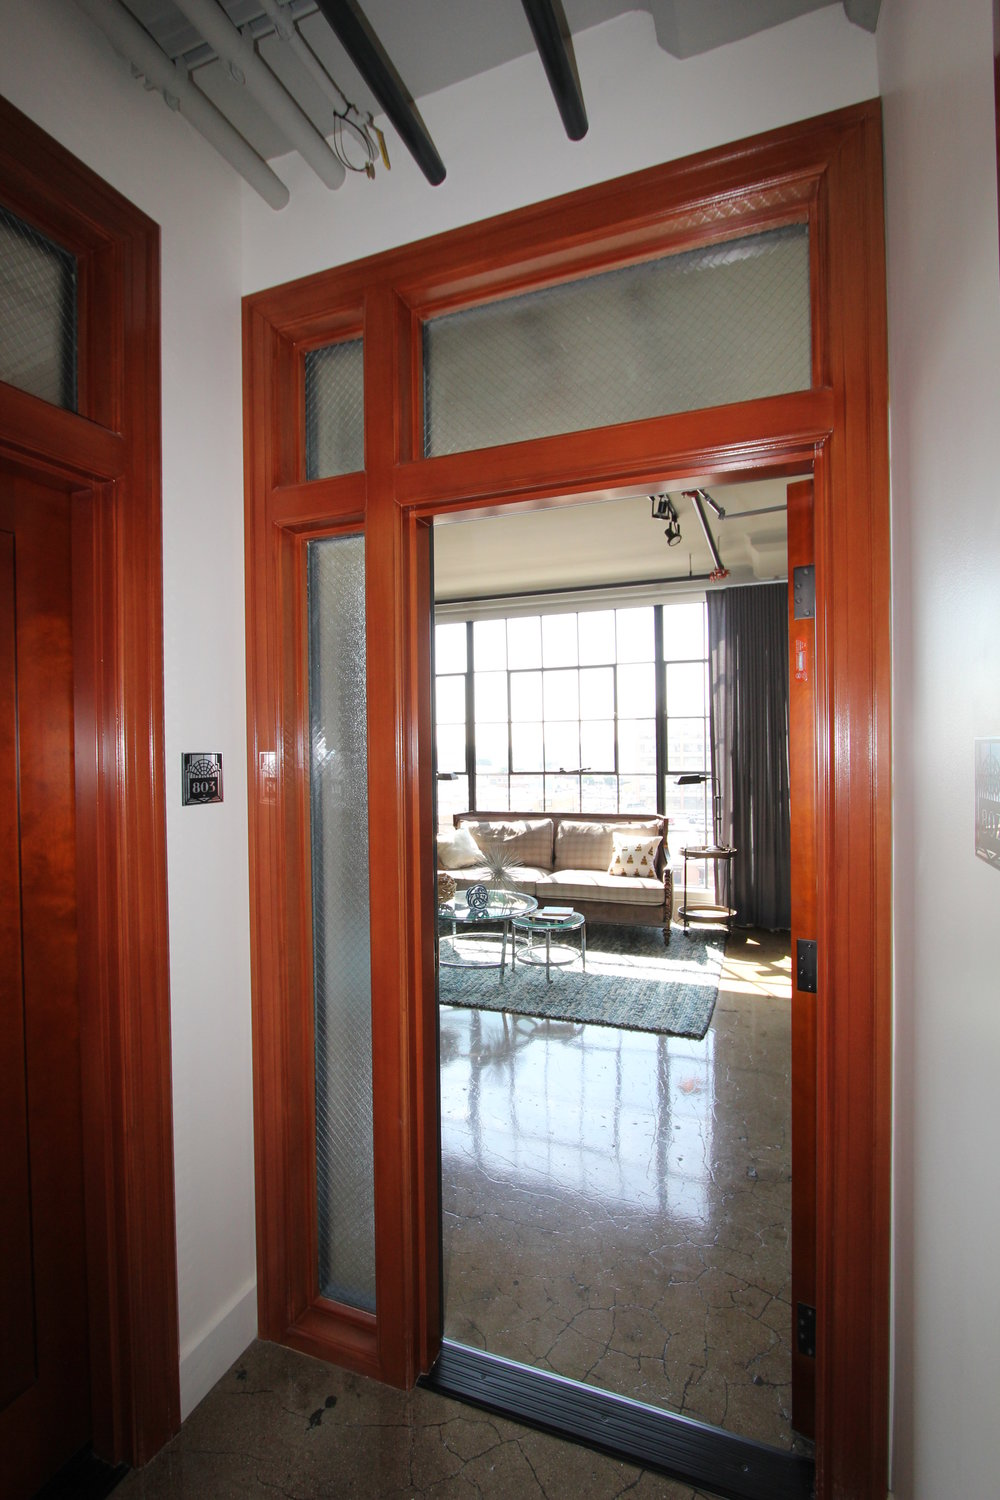 Interior wood door to unit, after rehabilitation.